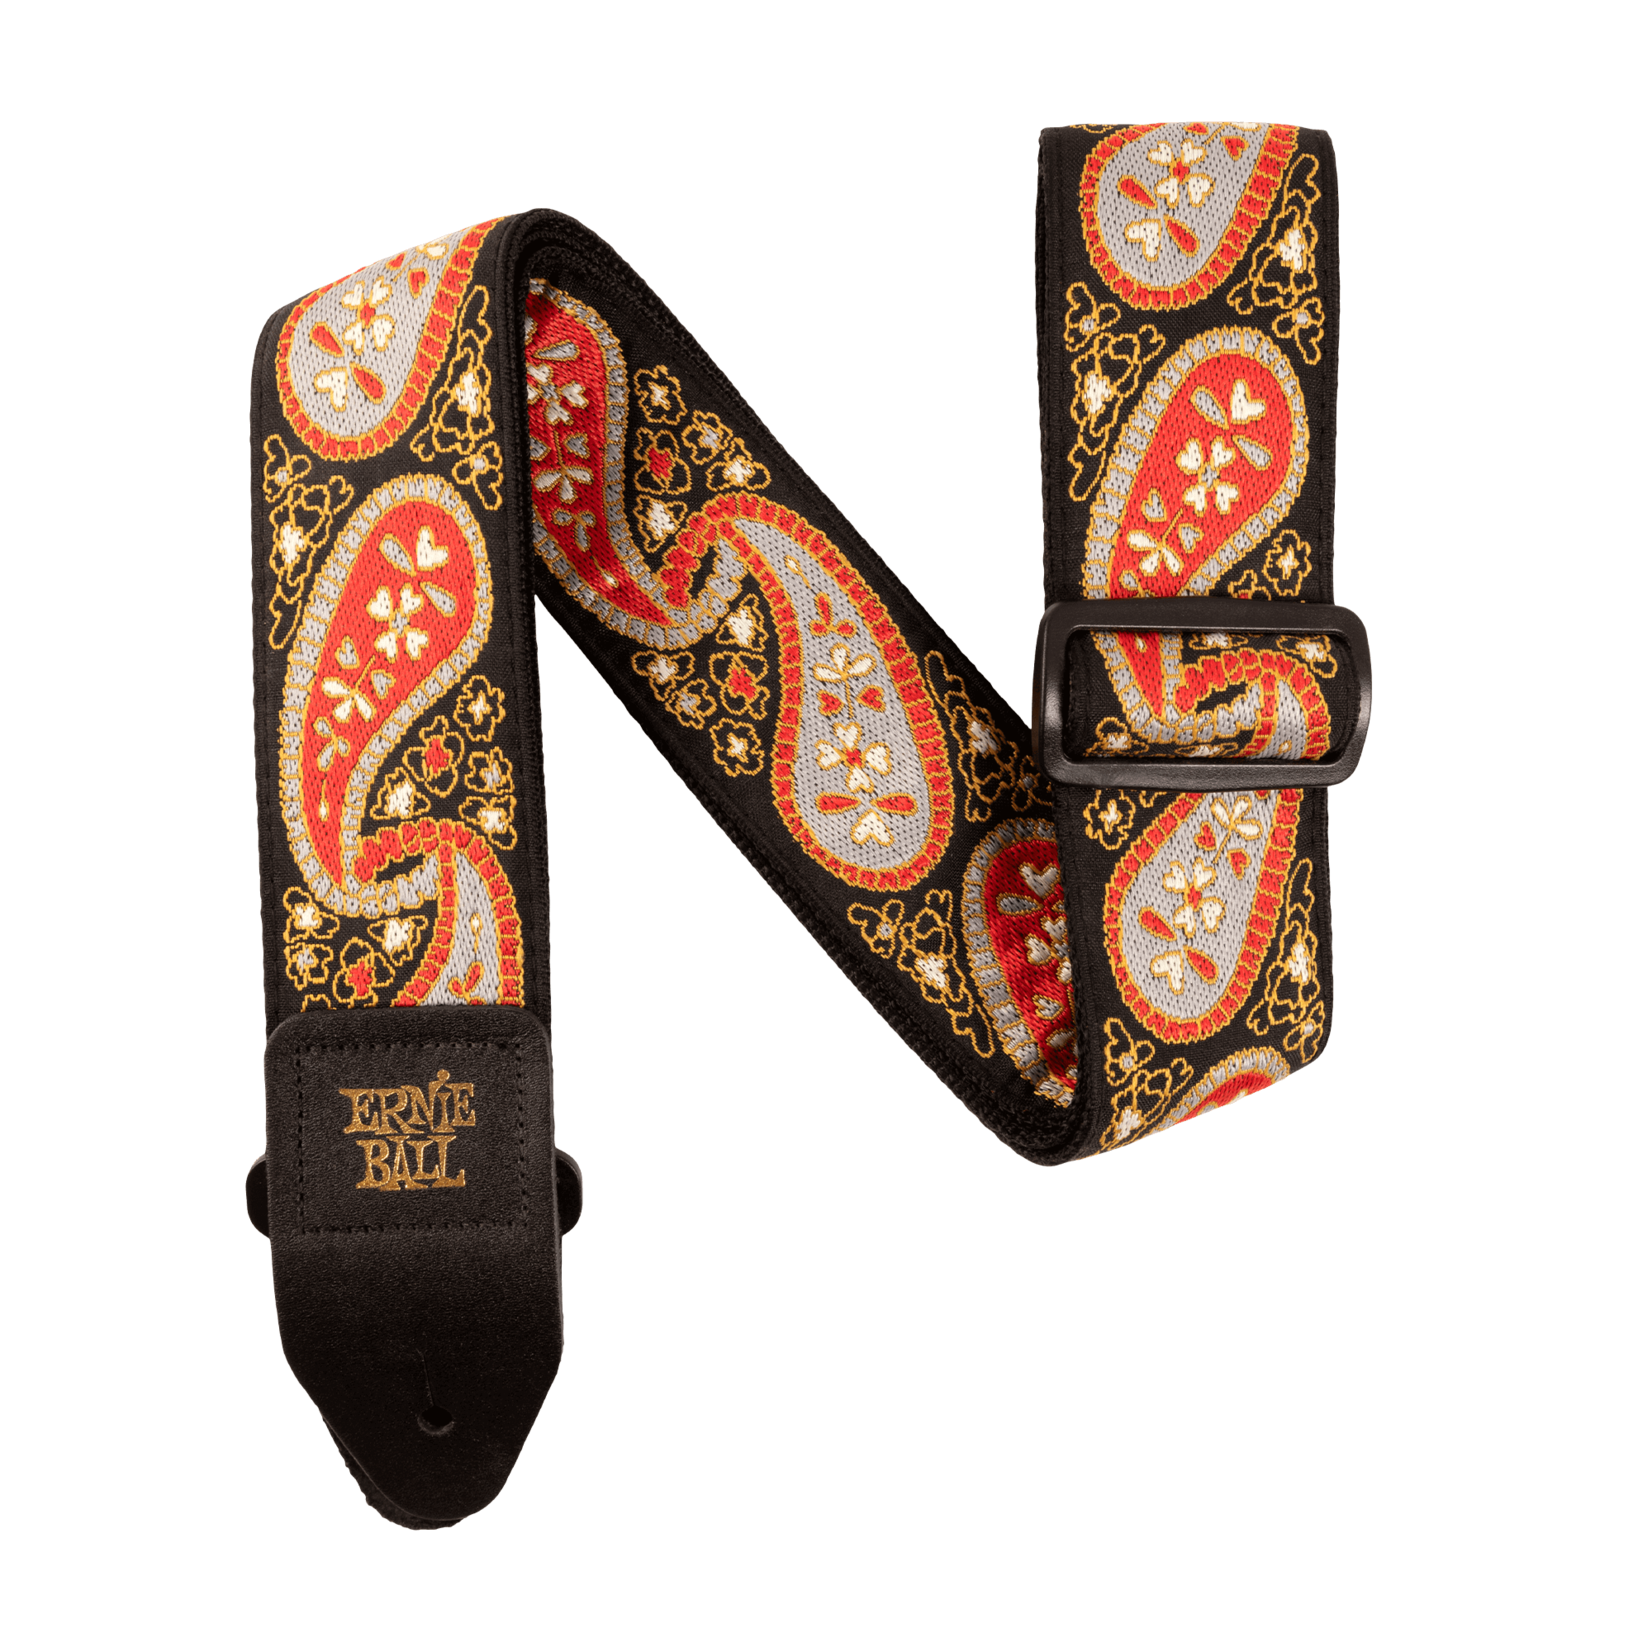 Ernie Ball Ernie Ball Midnight Paisley Jacquard Guitar Strap